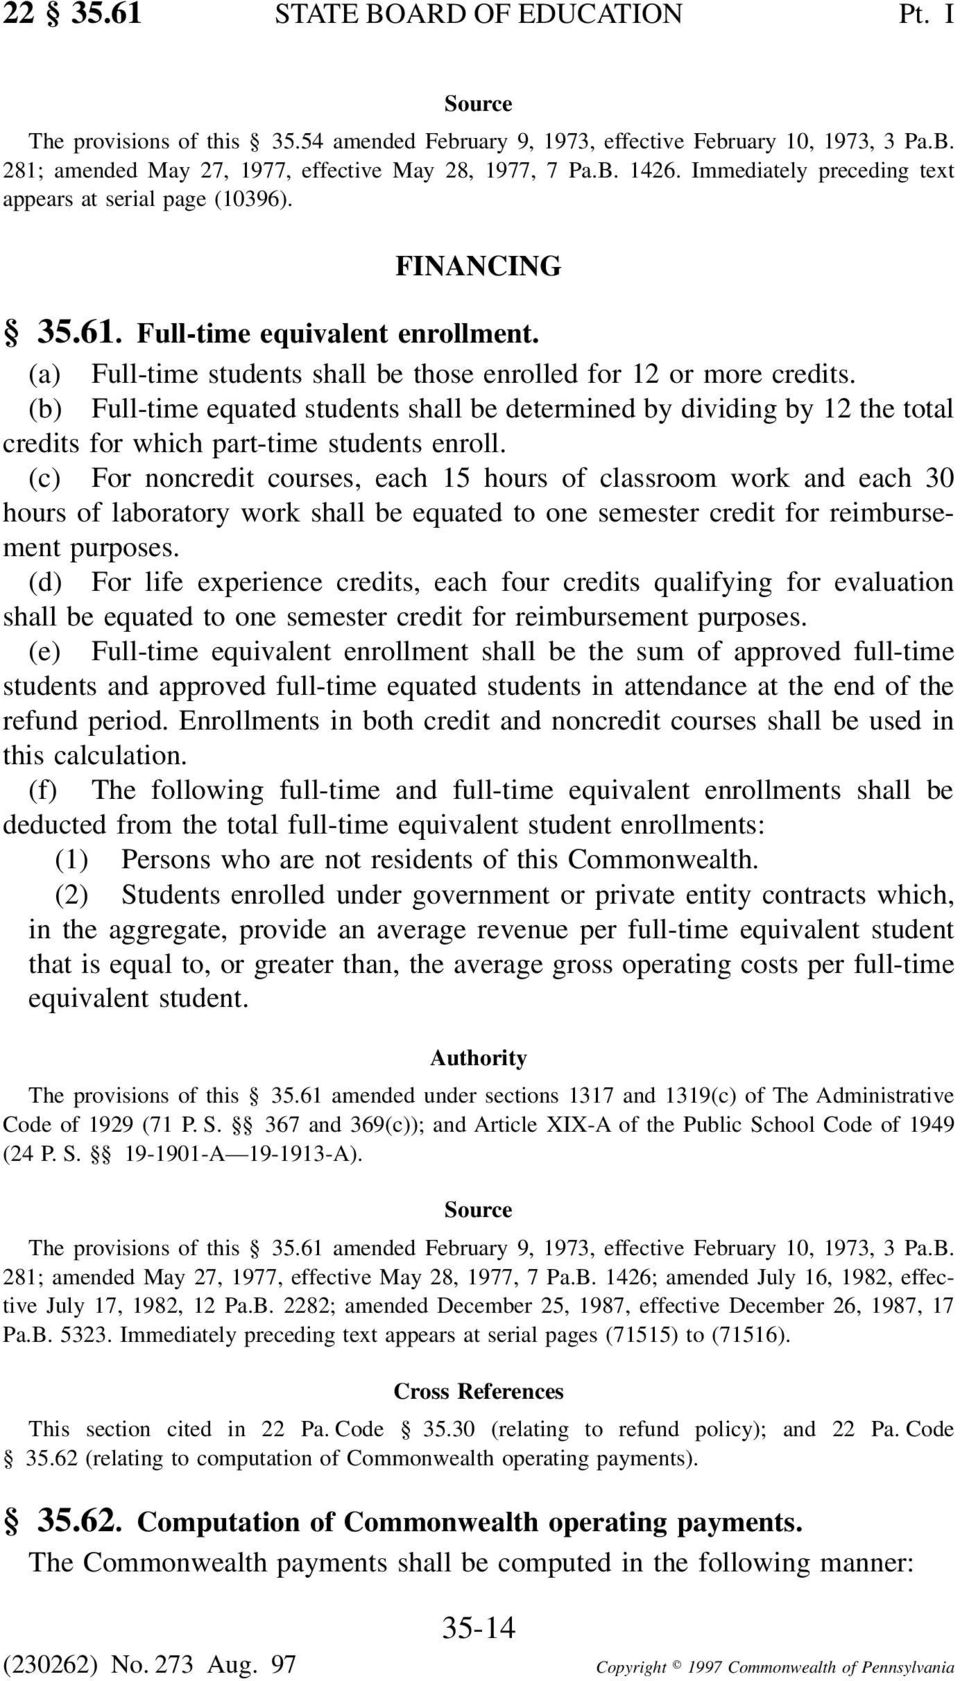 (b) Full-time equated students shall be determined by dividing by 12 the total credits for which part-time students enroll.